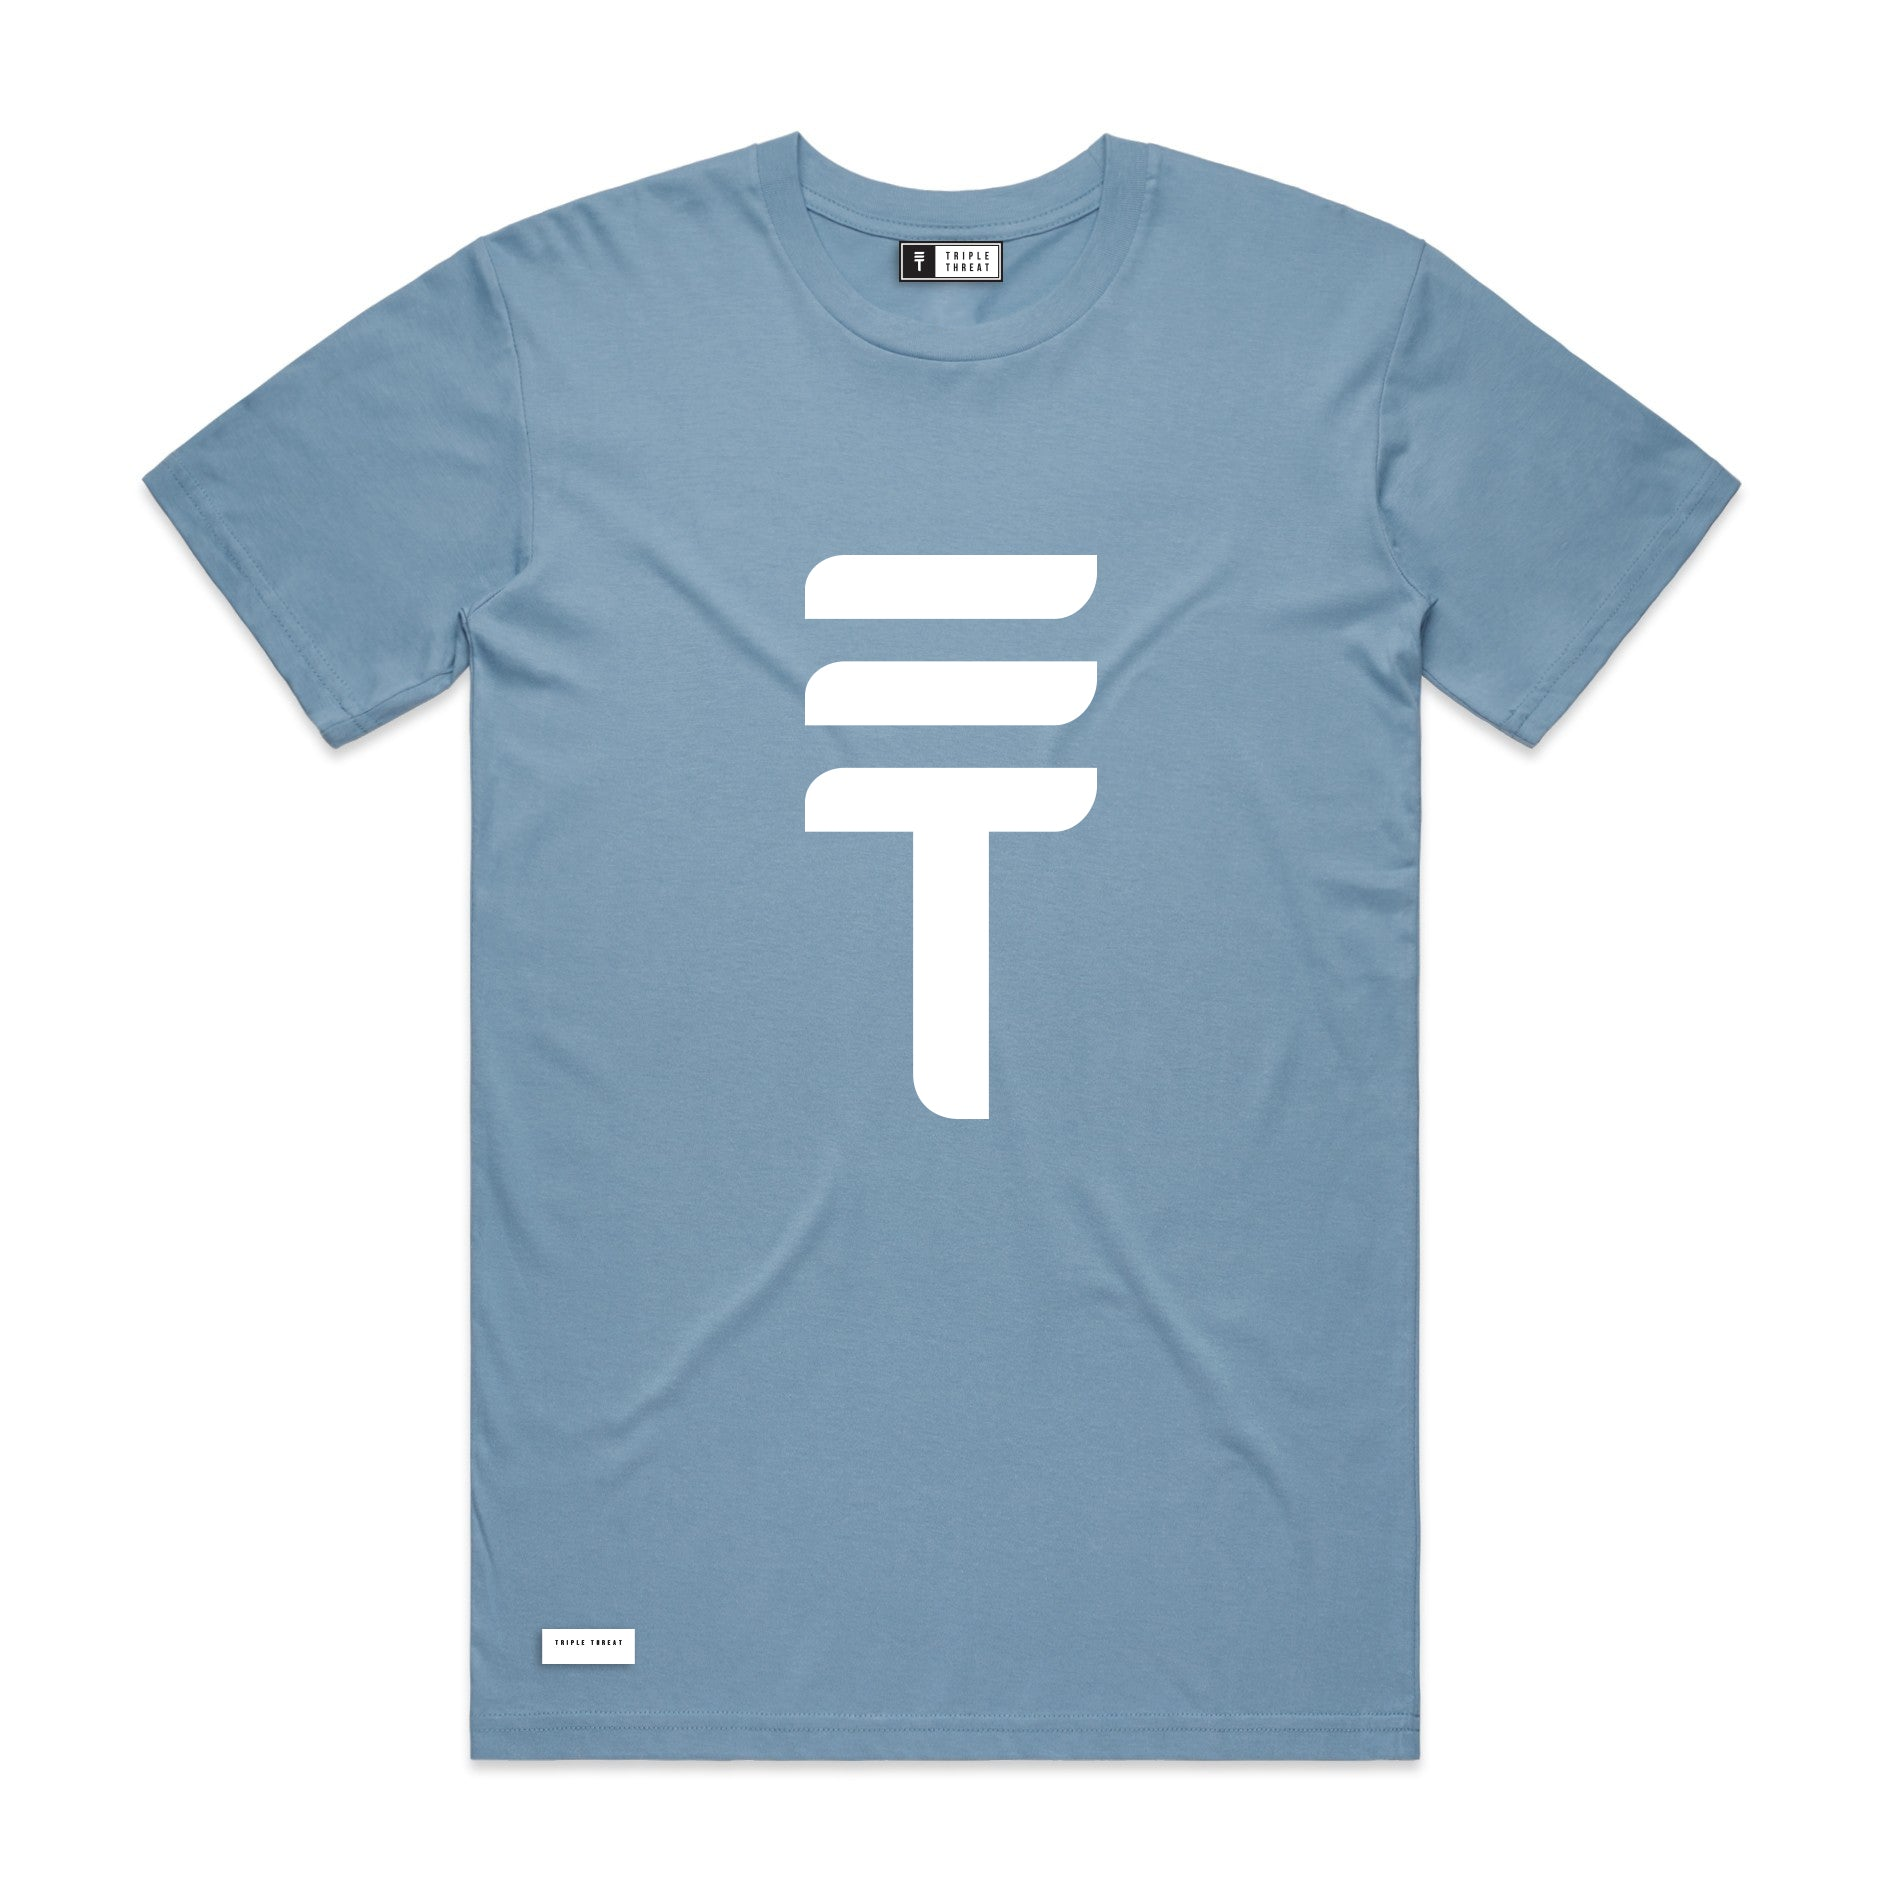 BIG LOGO T-SHIRT - LIGHT BLUE